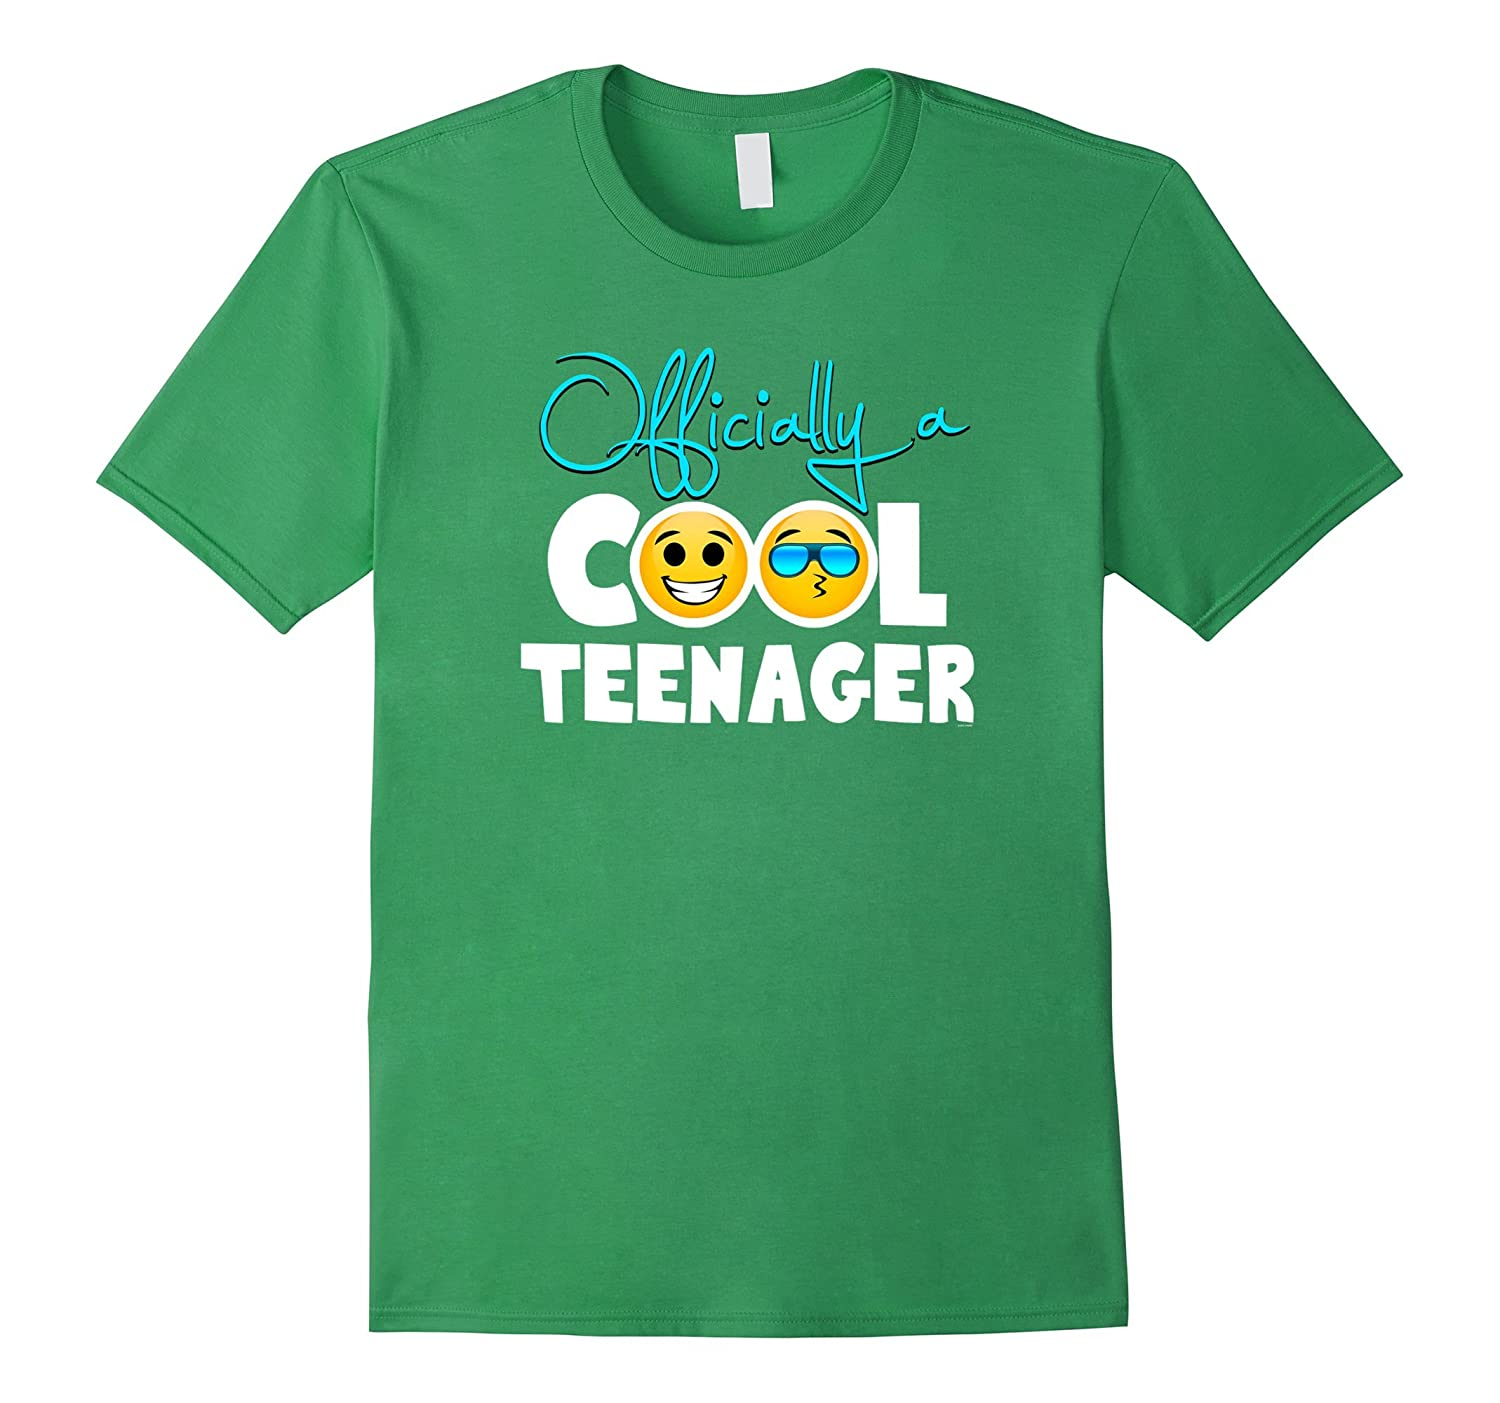 Emojicon 13th birthday gifts for teenagers age 13 boys Tee